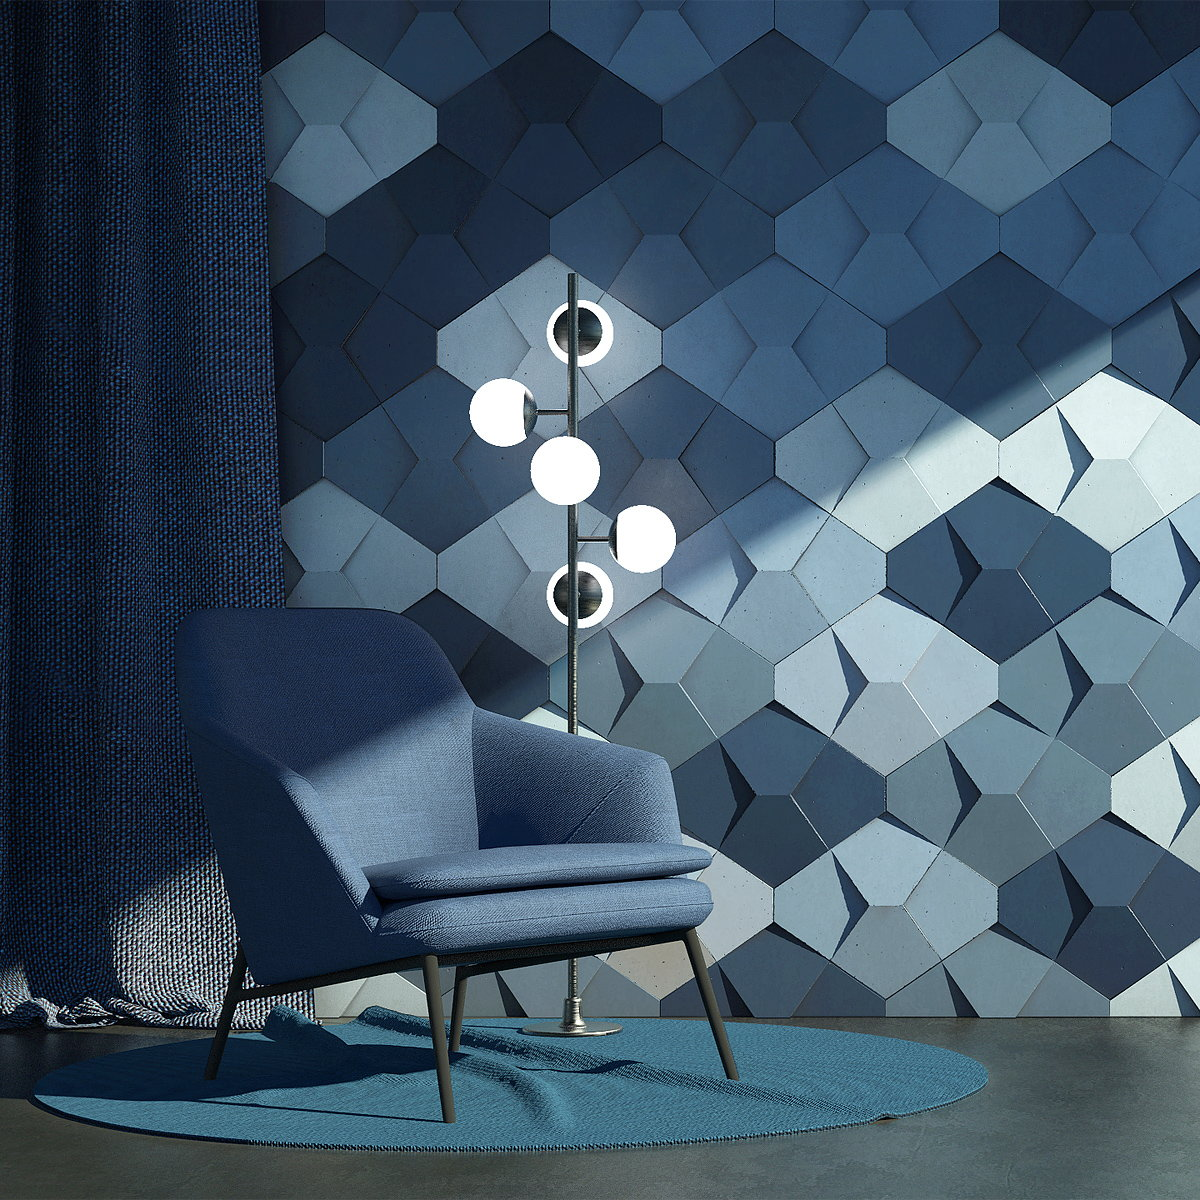 SCALES Tile Collection by SHIFT